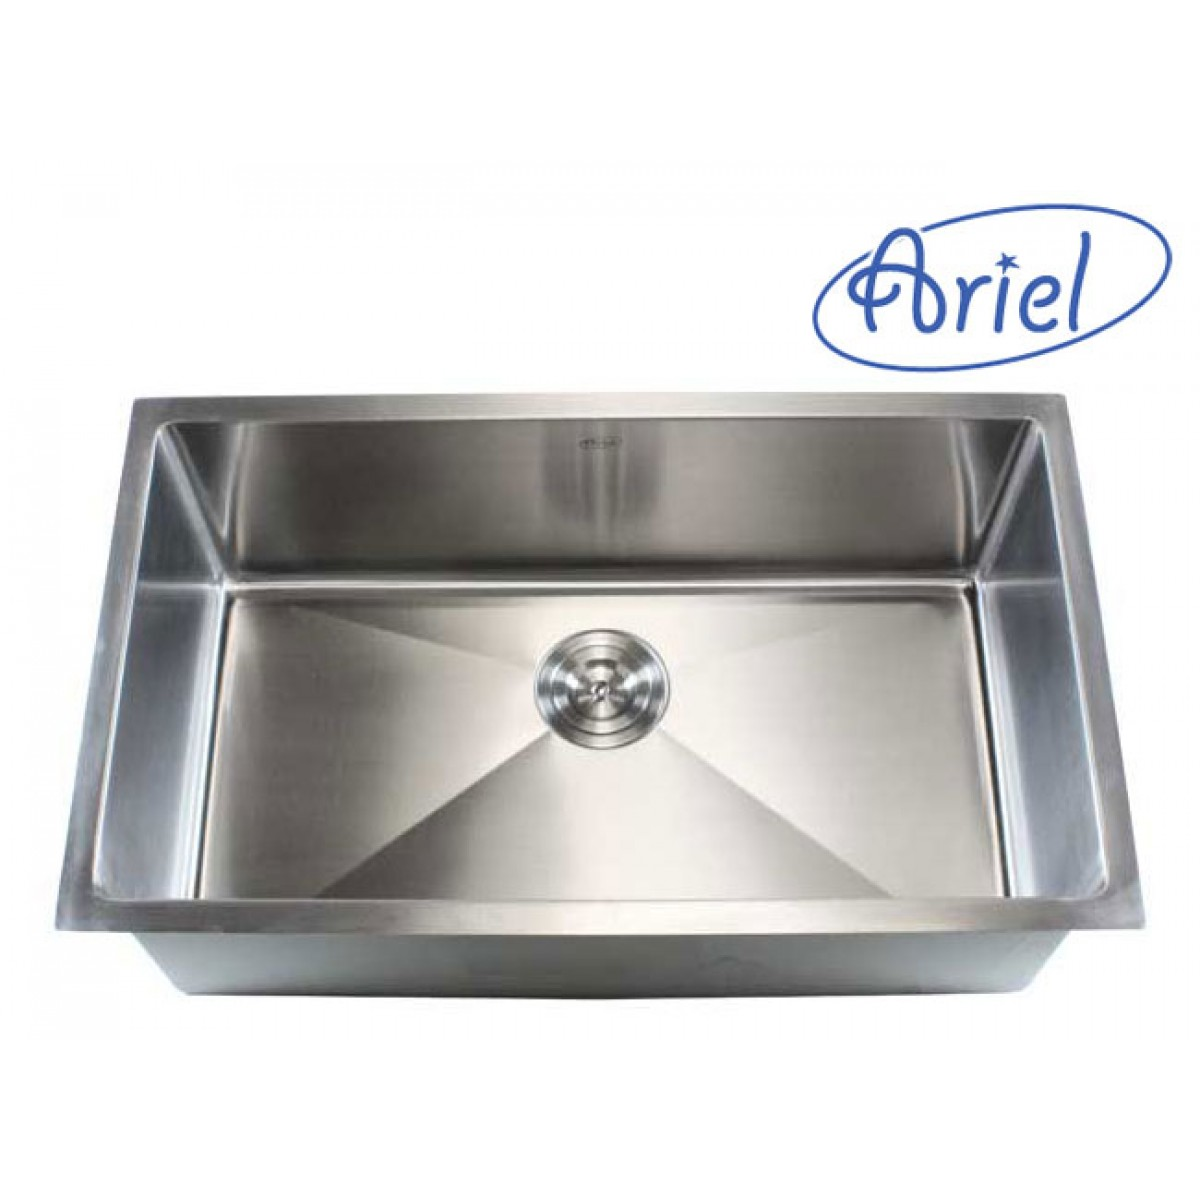 32 inch stainless steel undermount single bowl kitchen sink 15mm radius design 16 gauge - Metal Kitchen Sink